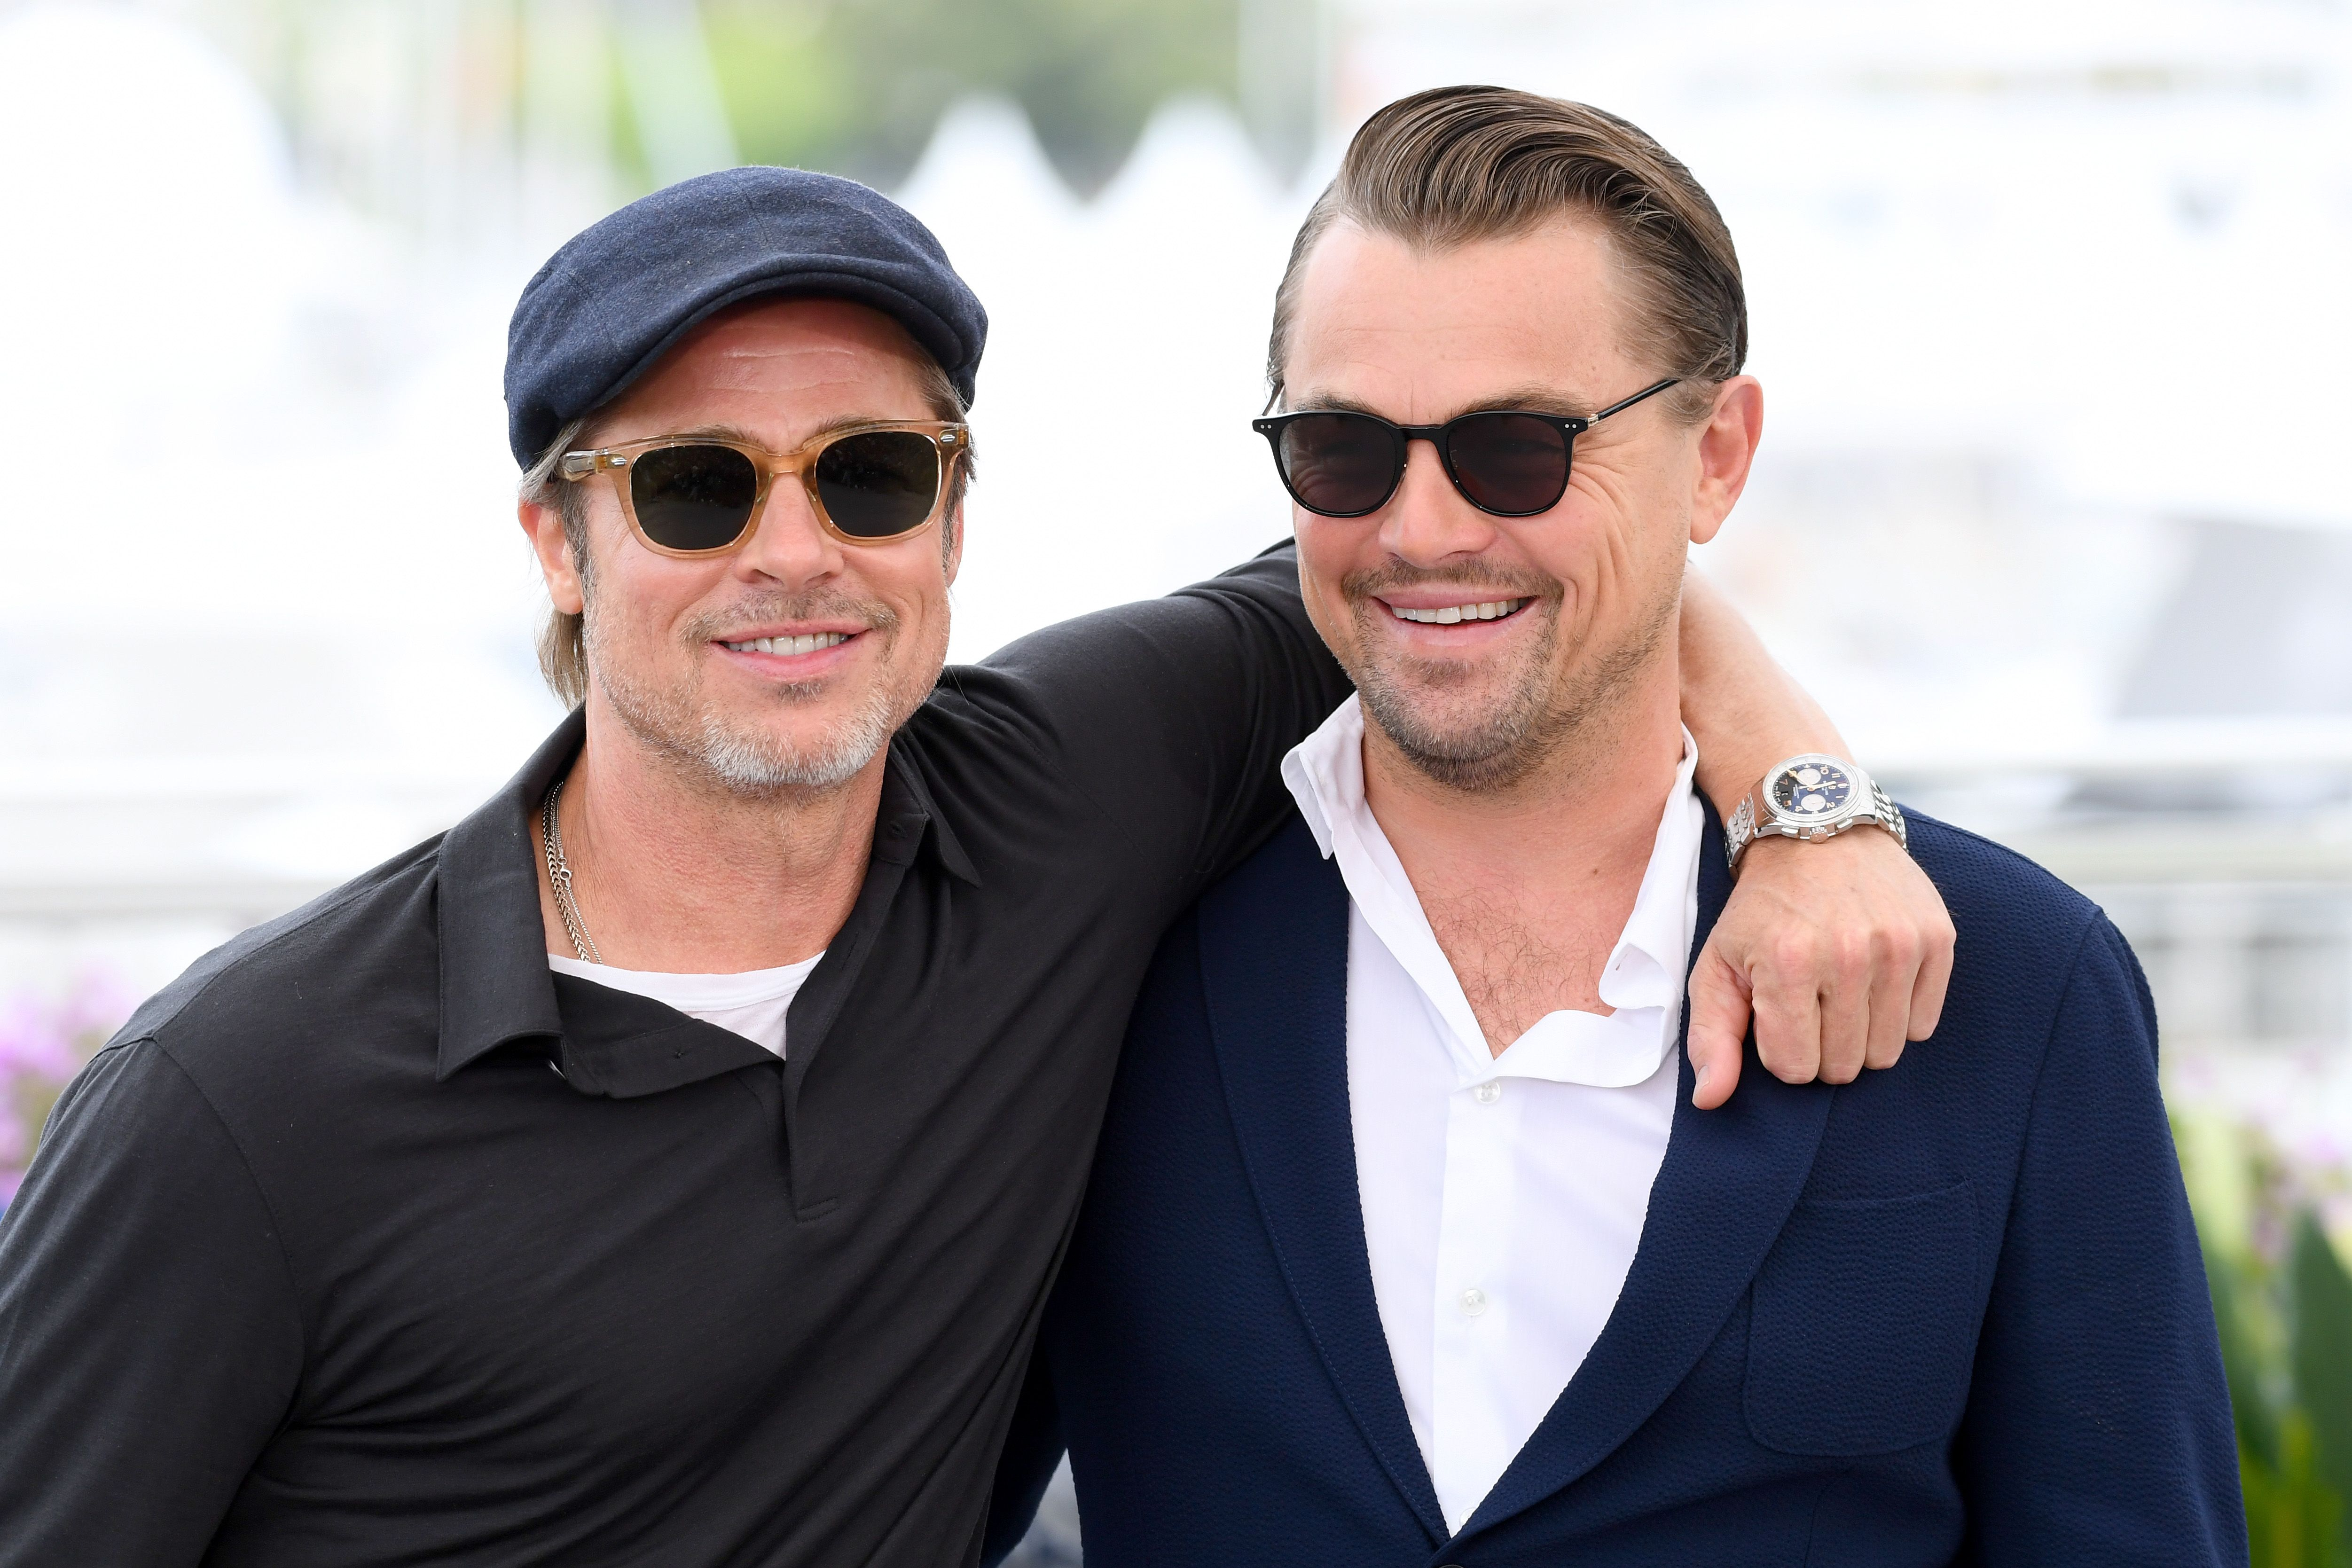 Brad Pitt Lets Slip His And Leonardo DiCaprio's Adorable Nicknames For Each Other